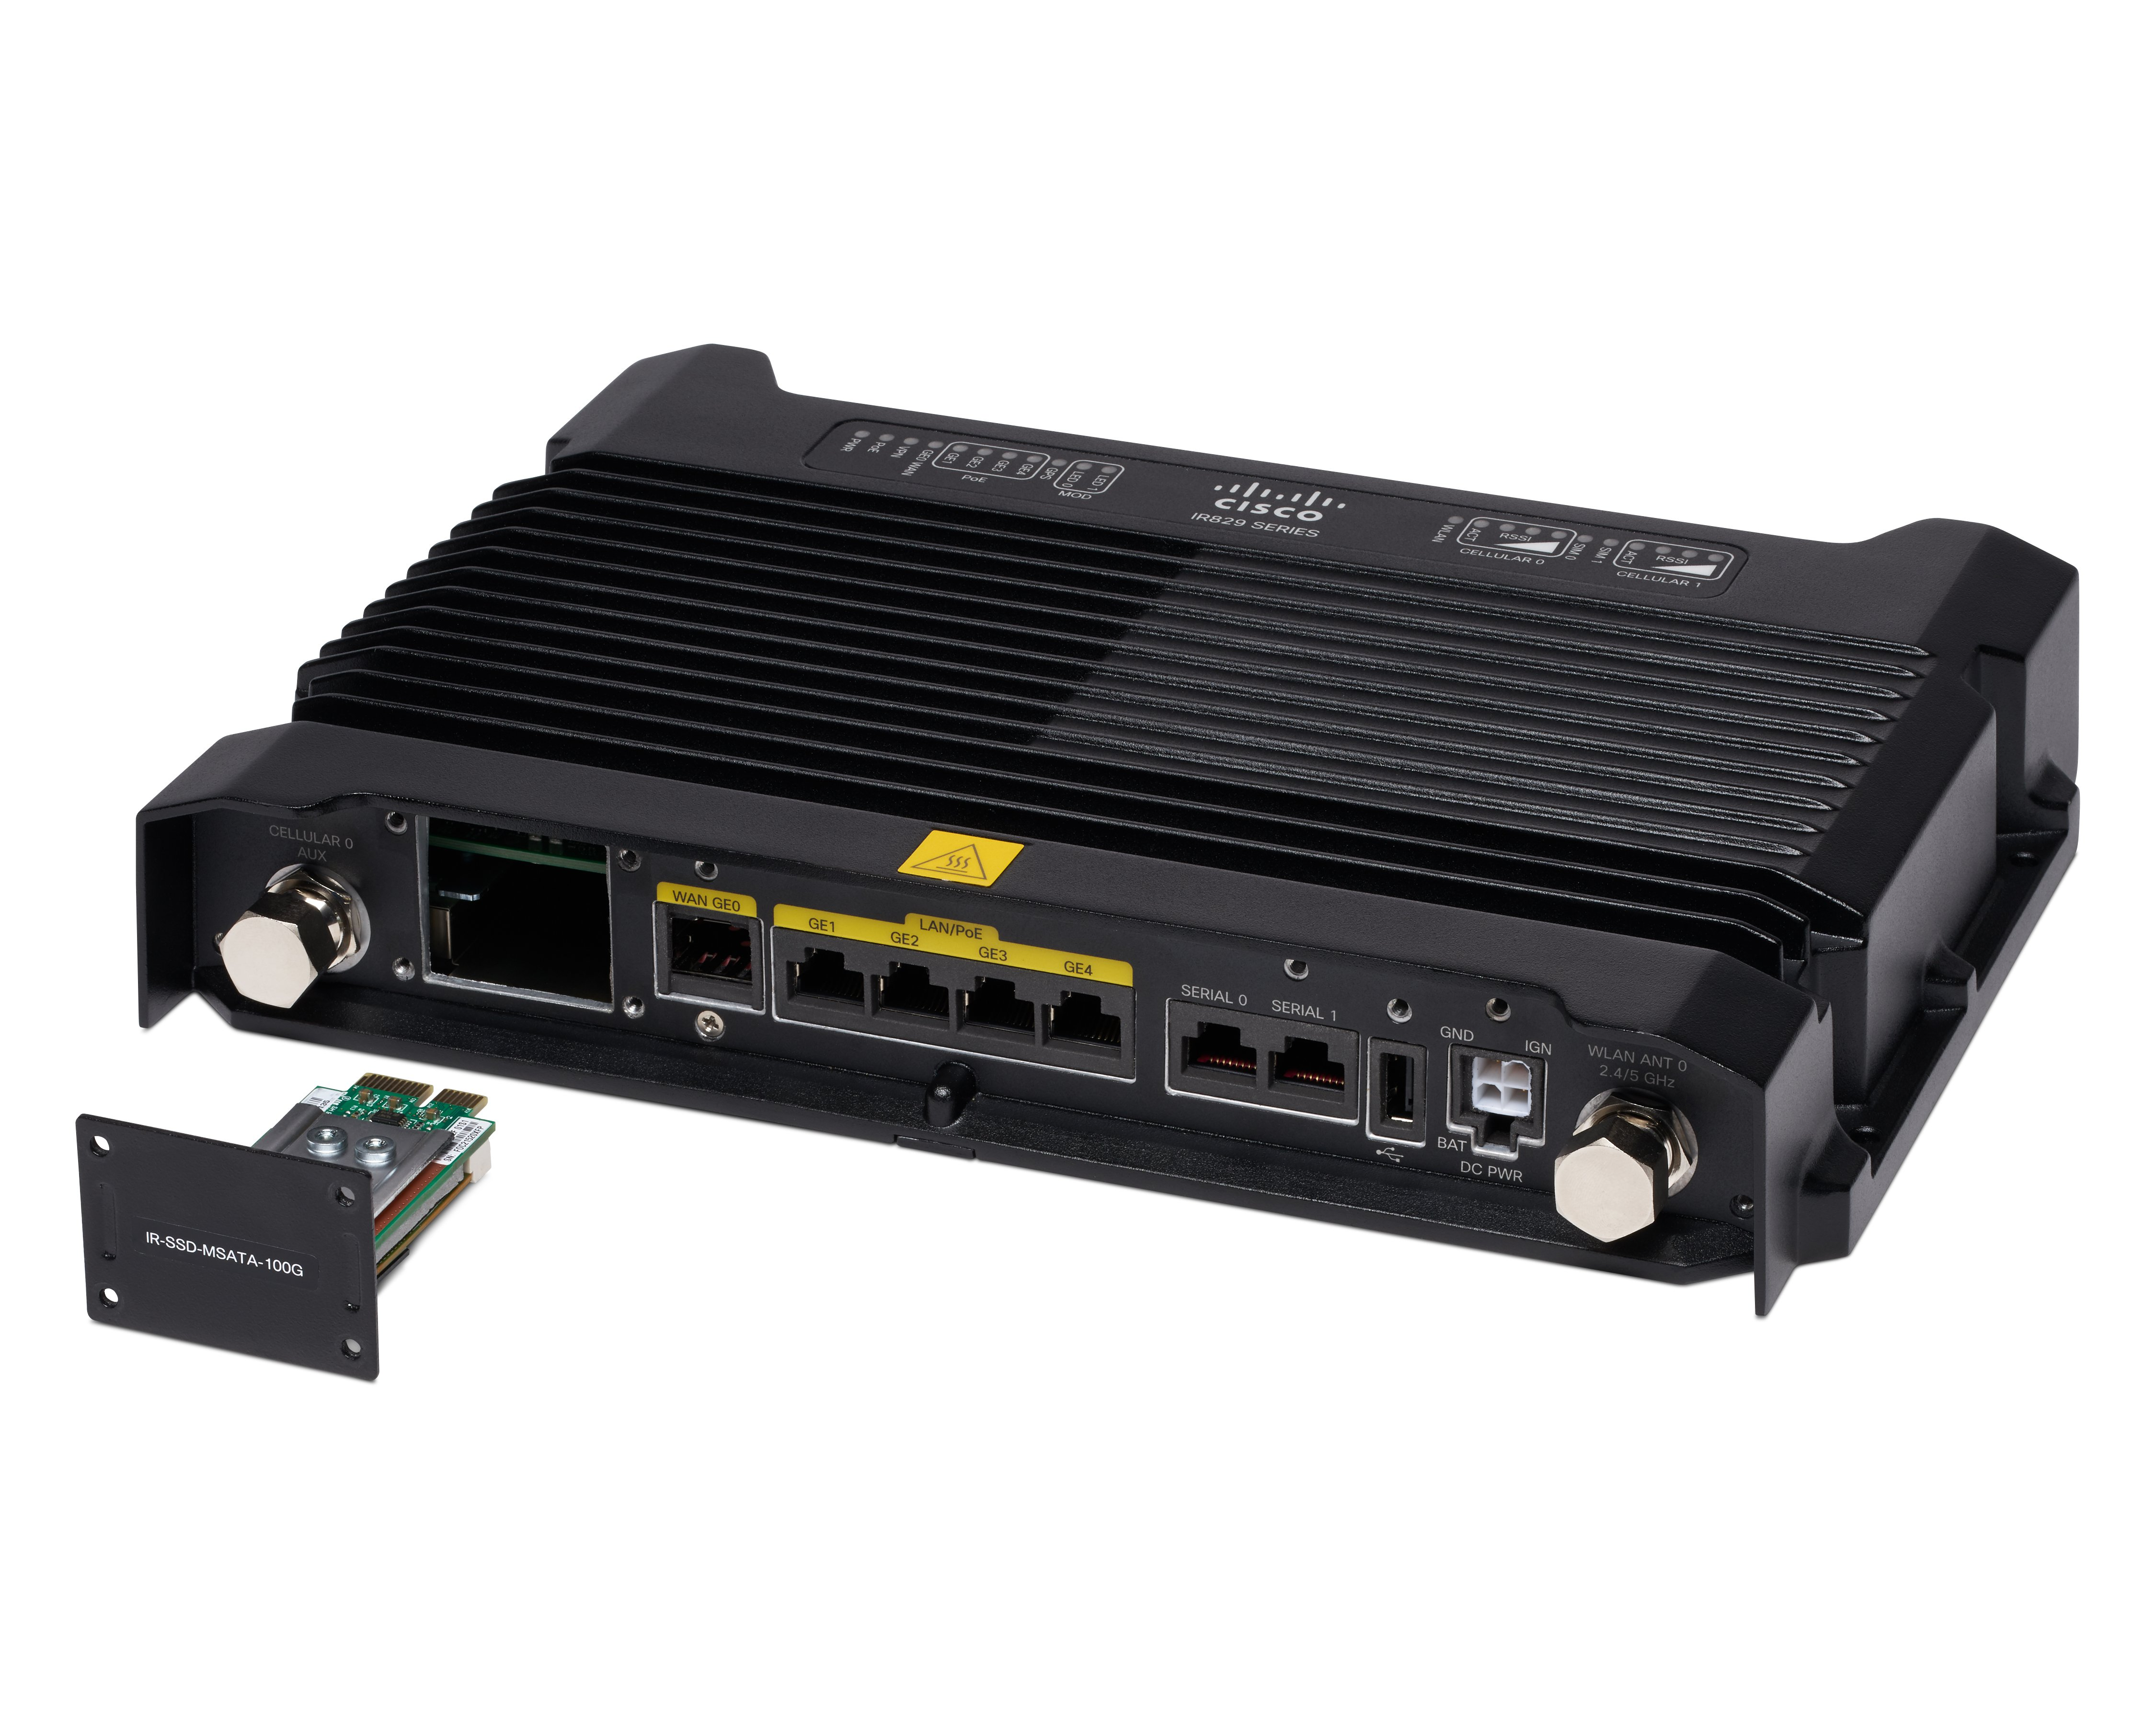 P4_4_Integrated_Services_Router_829_IR_829_Prod-original.jpg